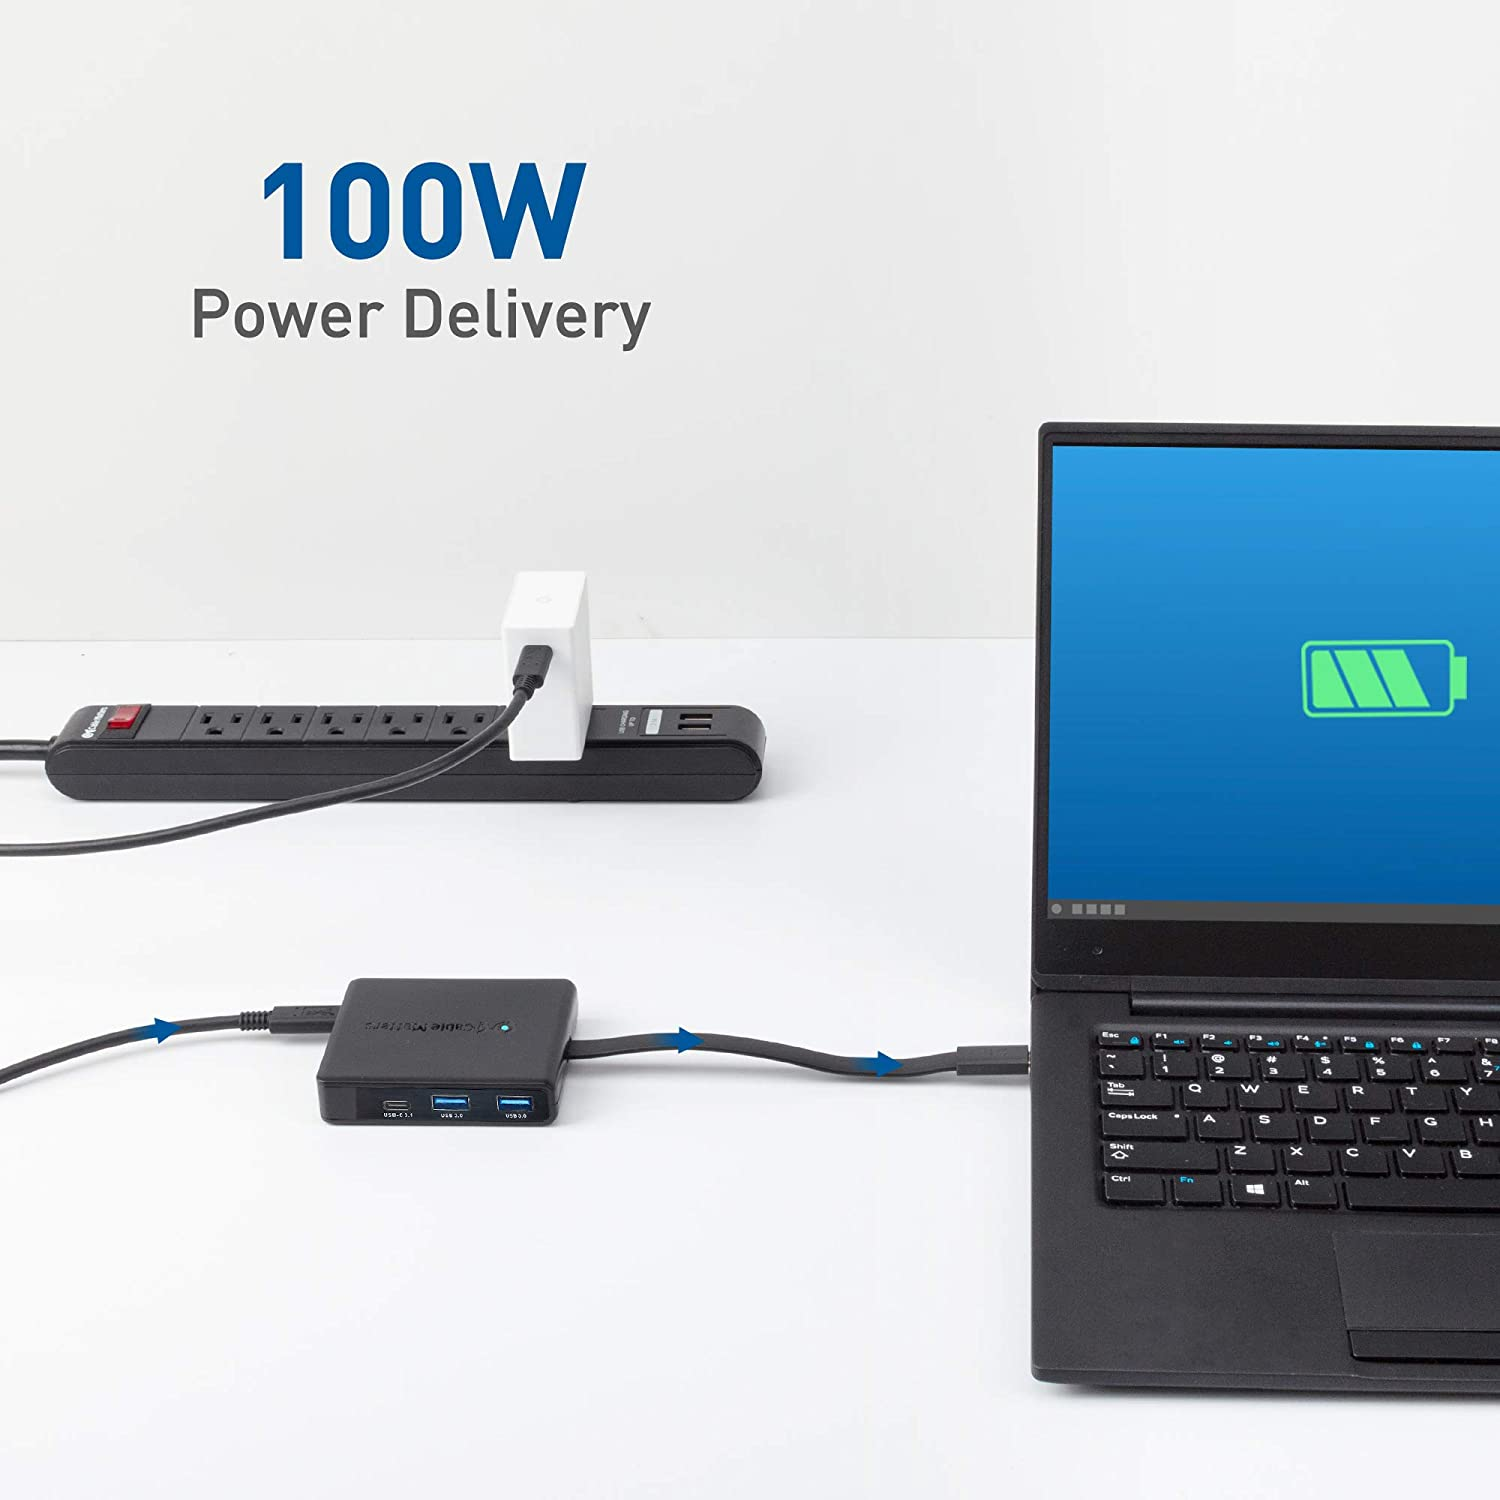 and 100W Charging with 3X DisplayPort USB-A and USB-C Thunderbolt 3 and Thunderbolt 4 Port Compatible for Windows Gigabit Ethernet Cable Matters Triple Monitor USB C Hub USB C Dock